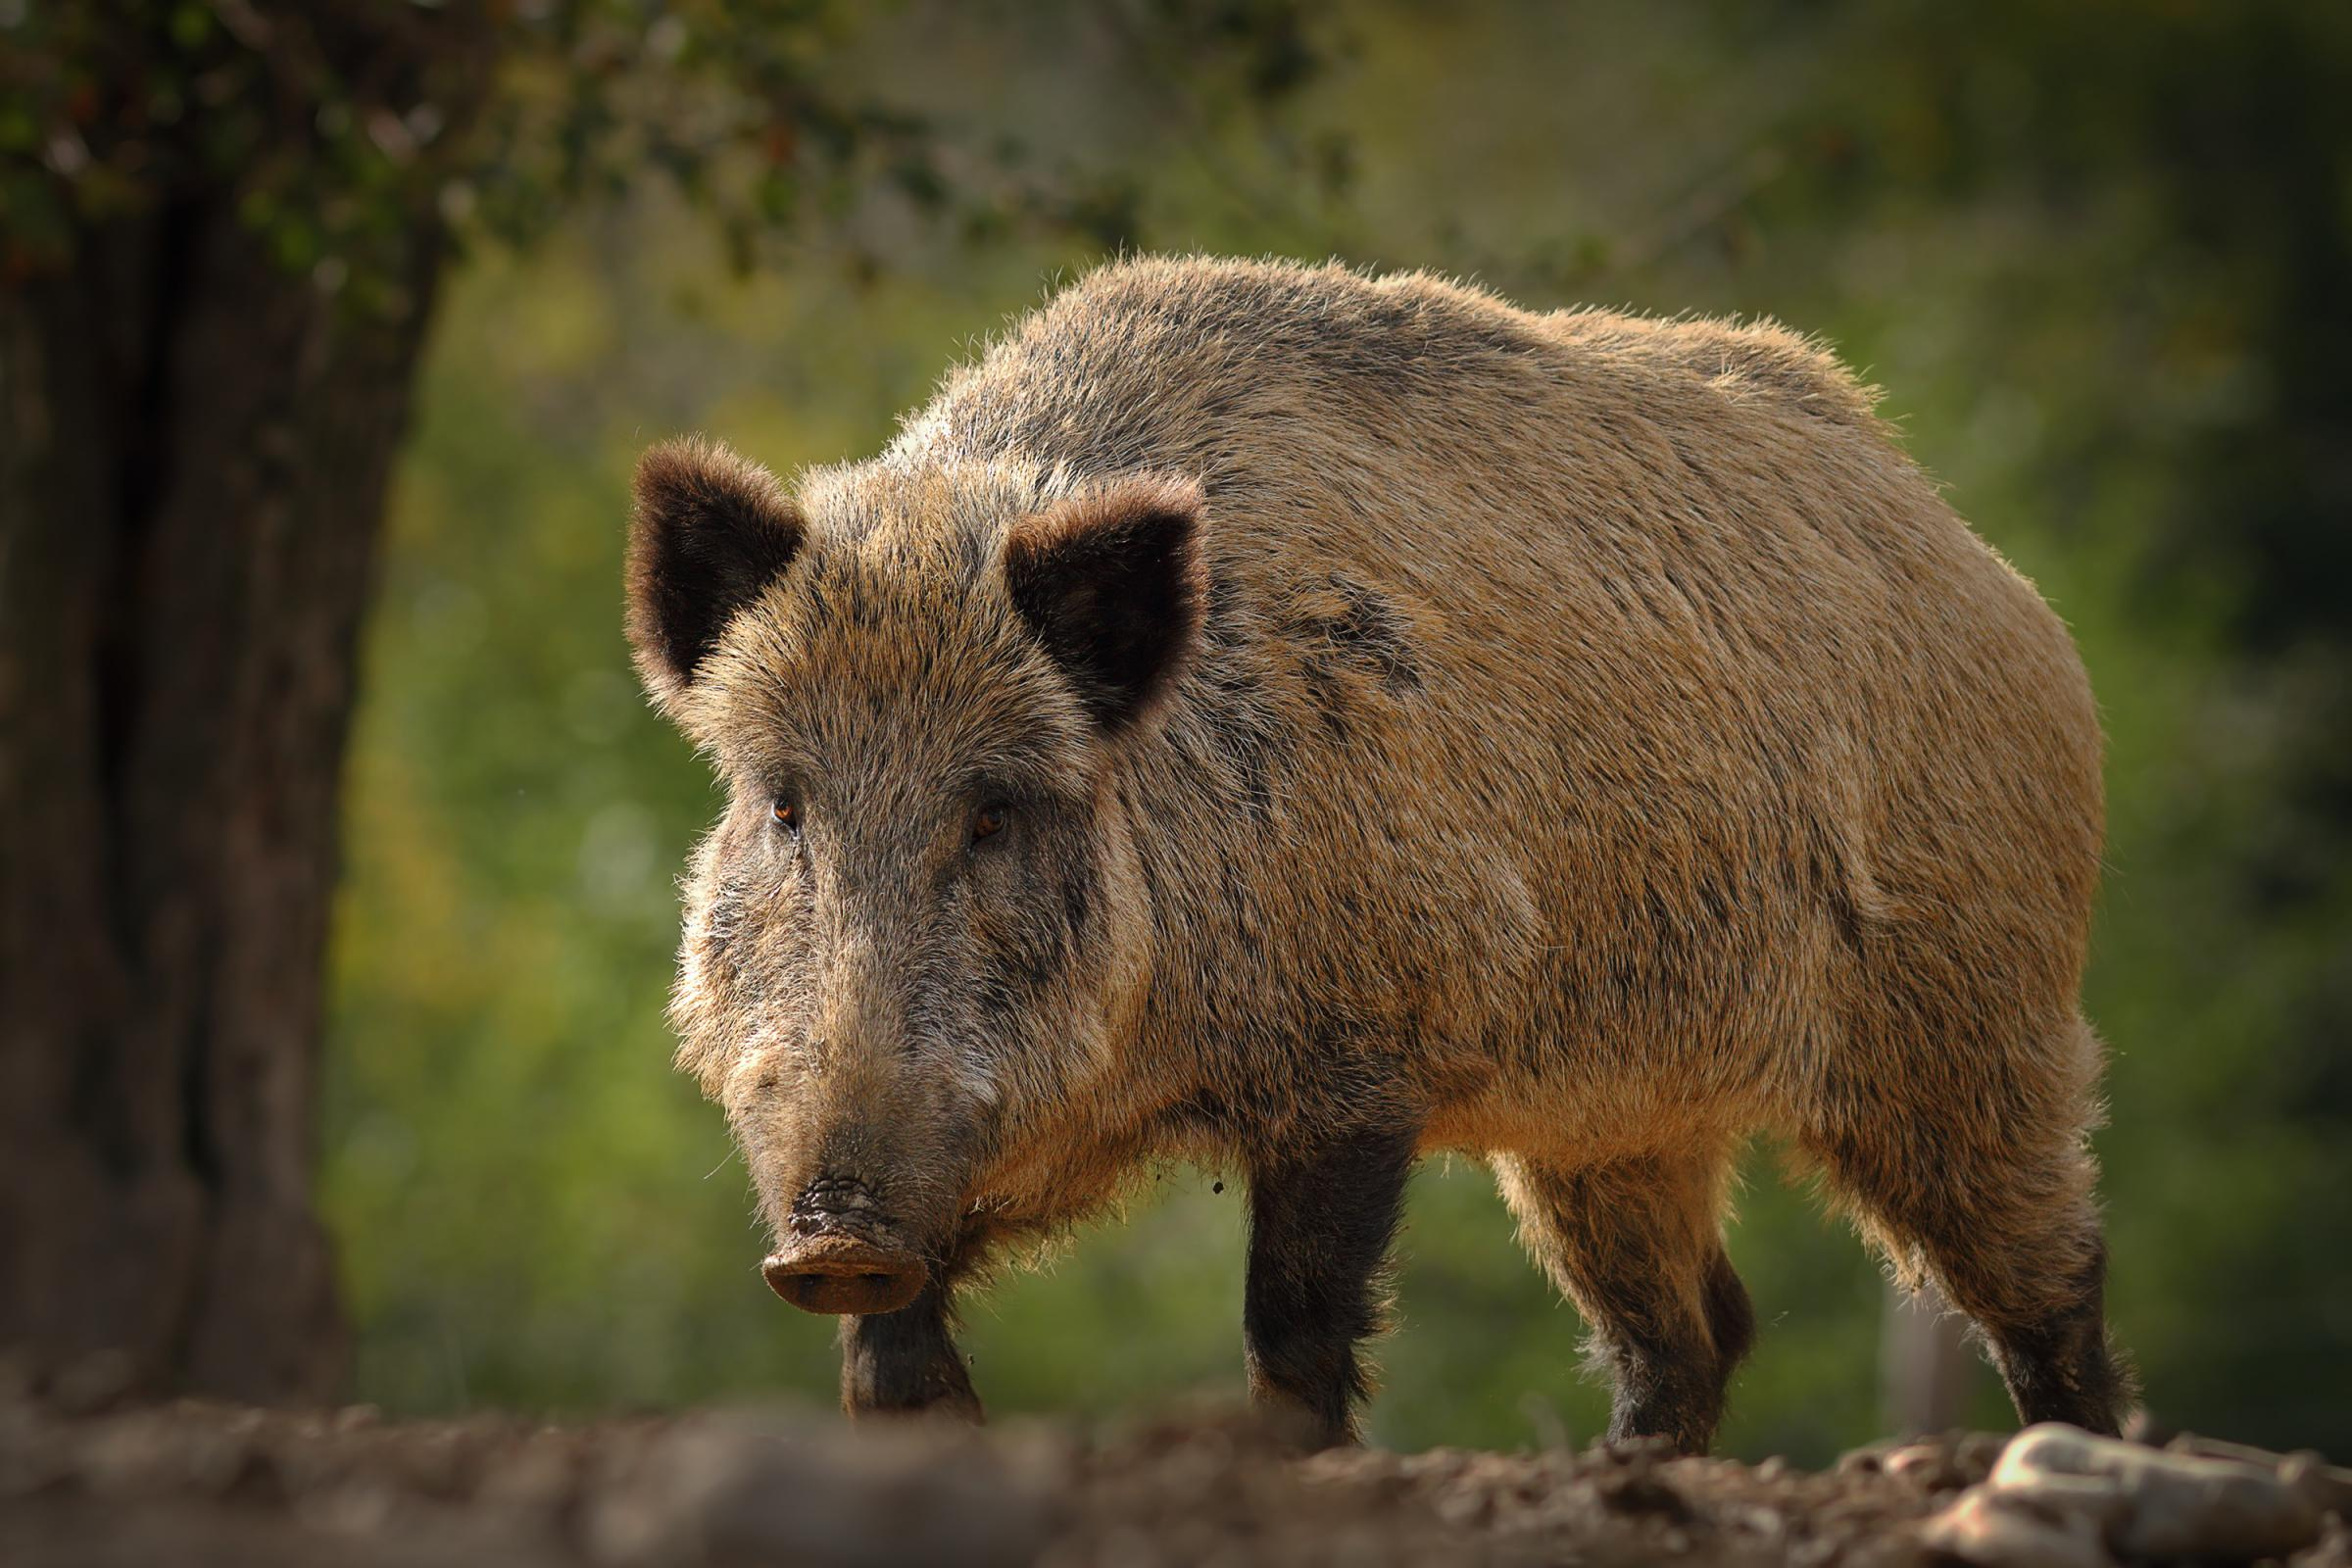 Eastern Europe is seeing African Swine Fever spread due in part to wild boar